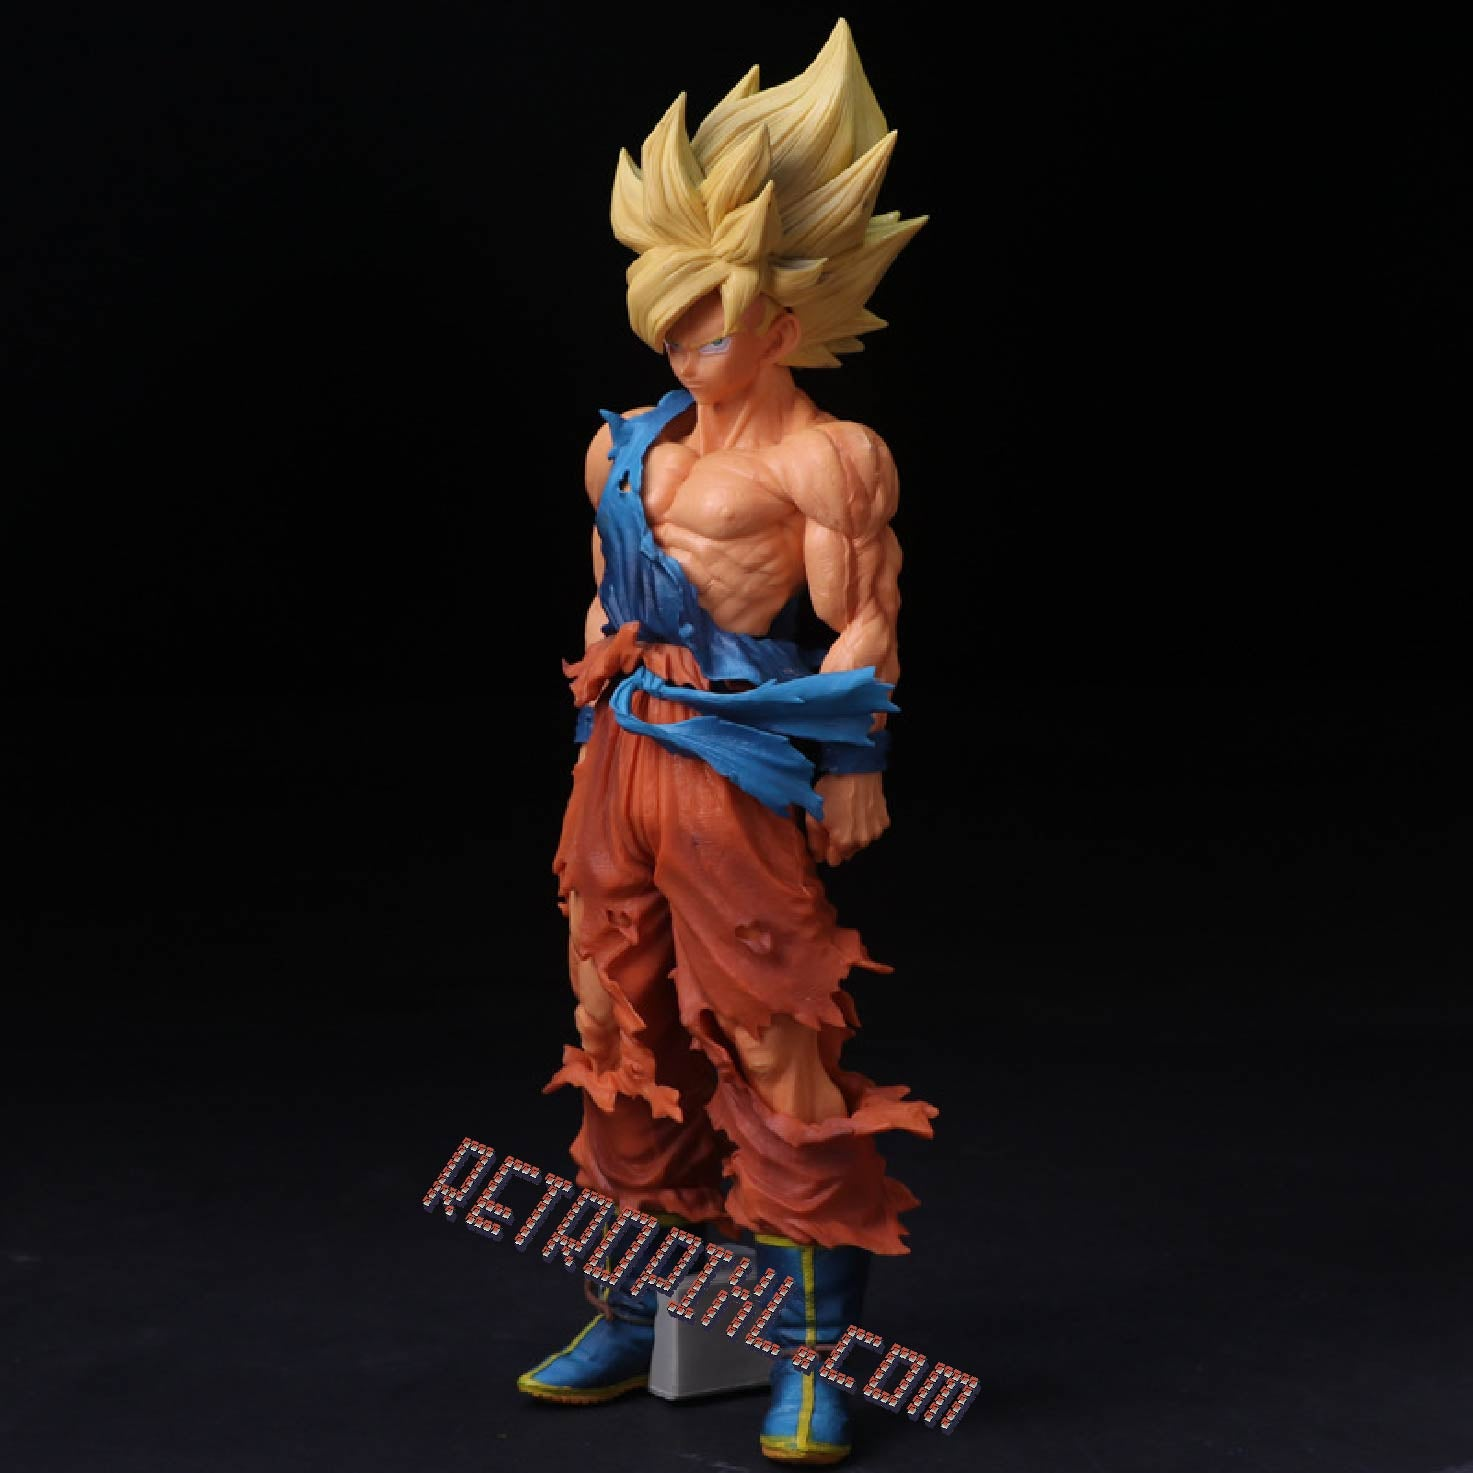 retropixl, retrogaming, dragon ball Z, dragon ball, dbz, dragon ball toys, son goku toy, son goku 34 cm, dragon ball